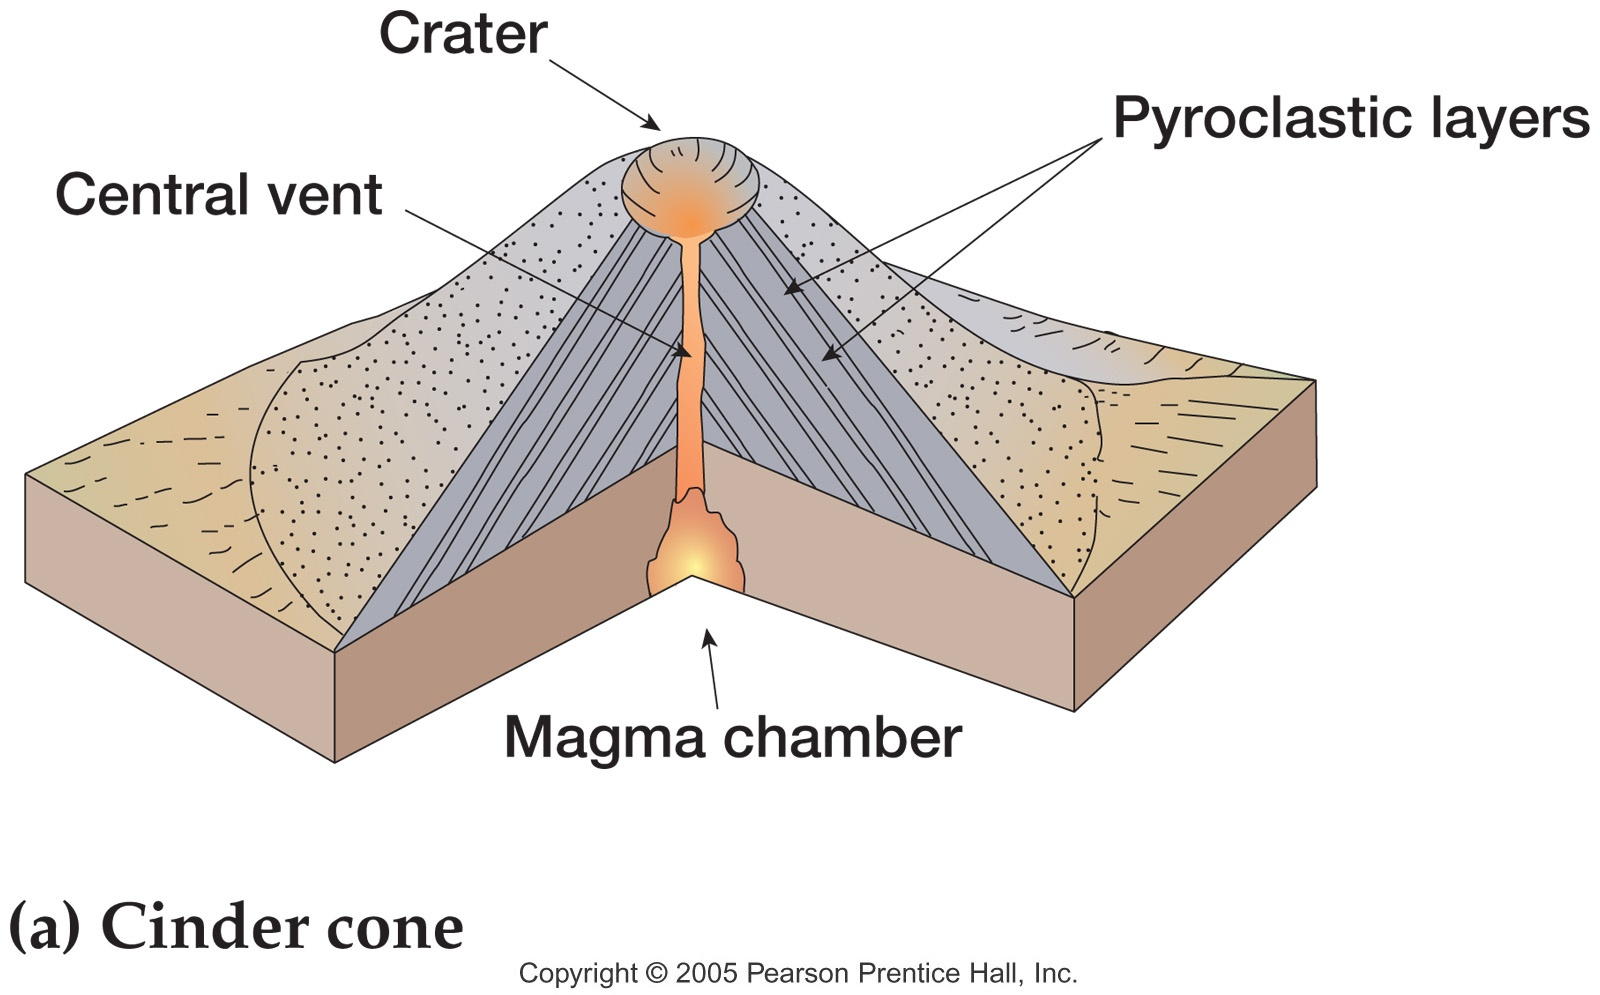 composite volcano diagram and shield volcanoes pictures diagramhow is composite volcano different from the others? quora composite volcano diagram and shield volcanoes pictures